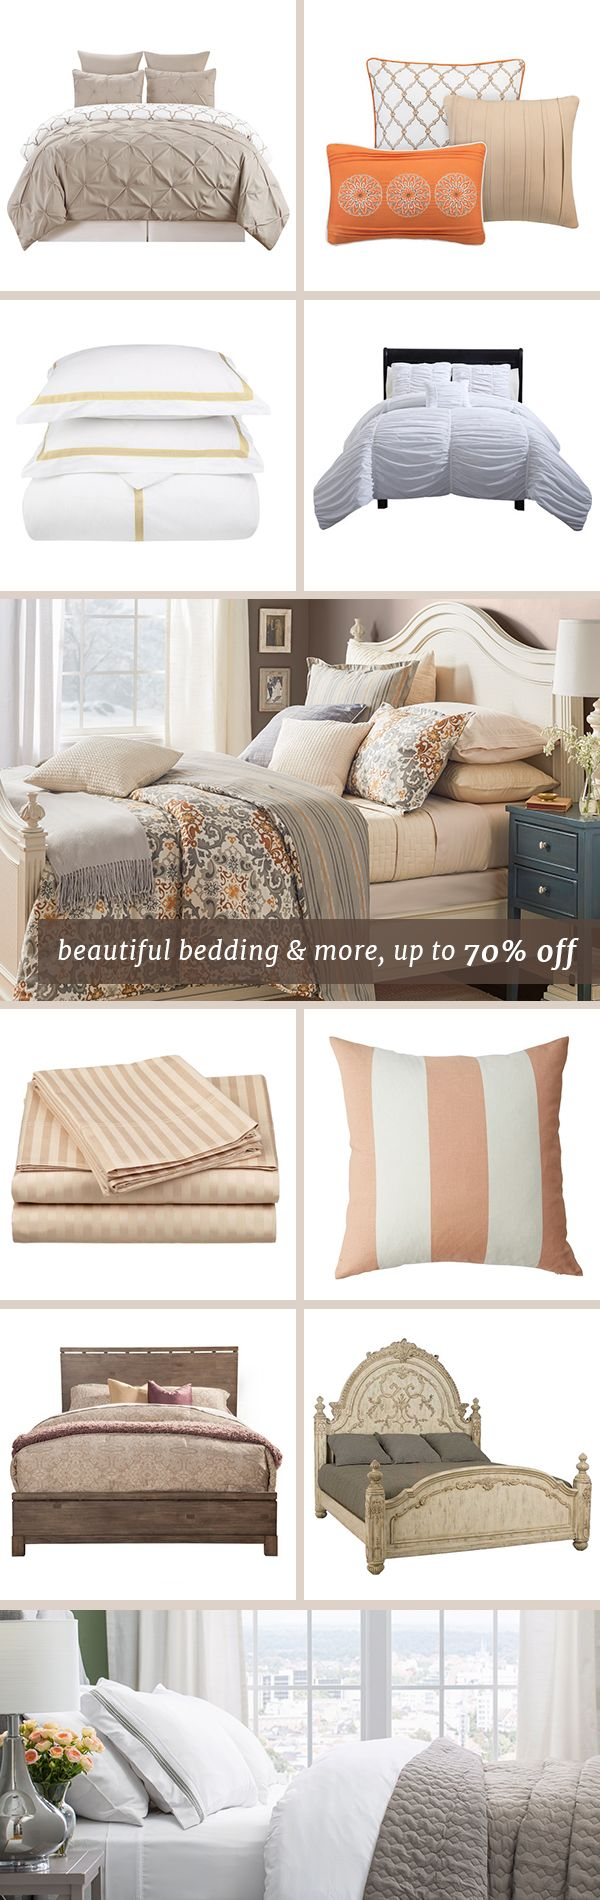 The right bedding can contribute to your space in more ways than one, keeping you comfortable and cozy while also adding color, pattern, and texture to your look. Joss and Main's selection of duvets, quilts, and sheets has an option for everyone, from basic solids to lively designs. Sign up at Joss & Main and get up to 70% off!